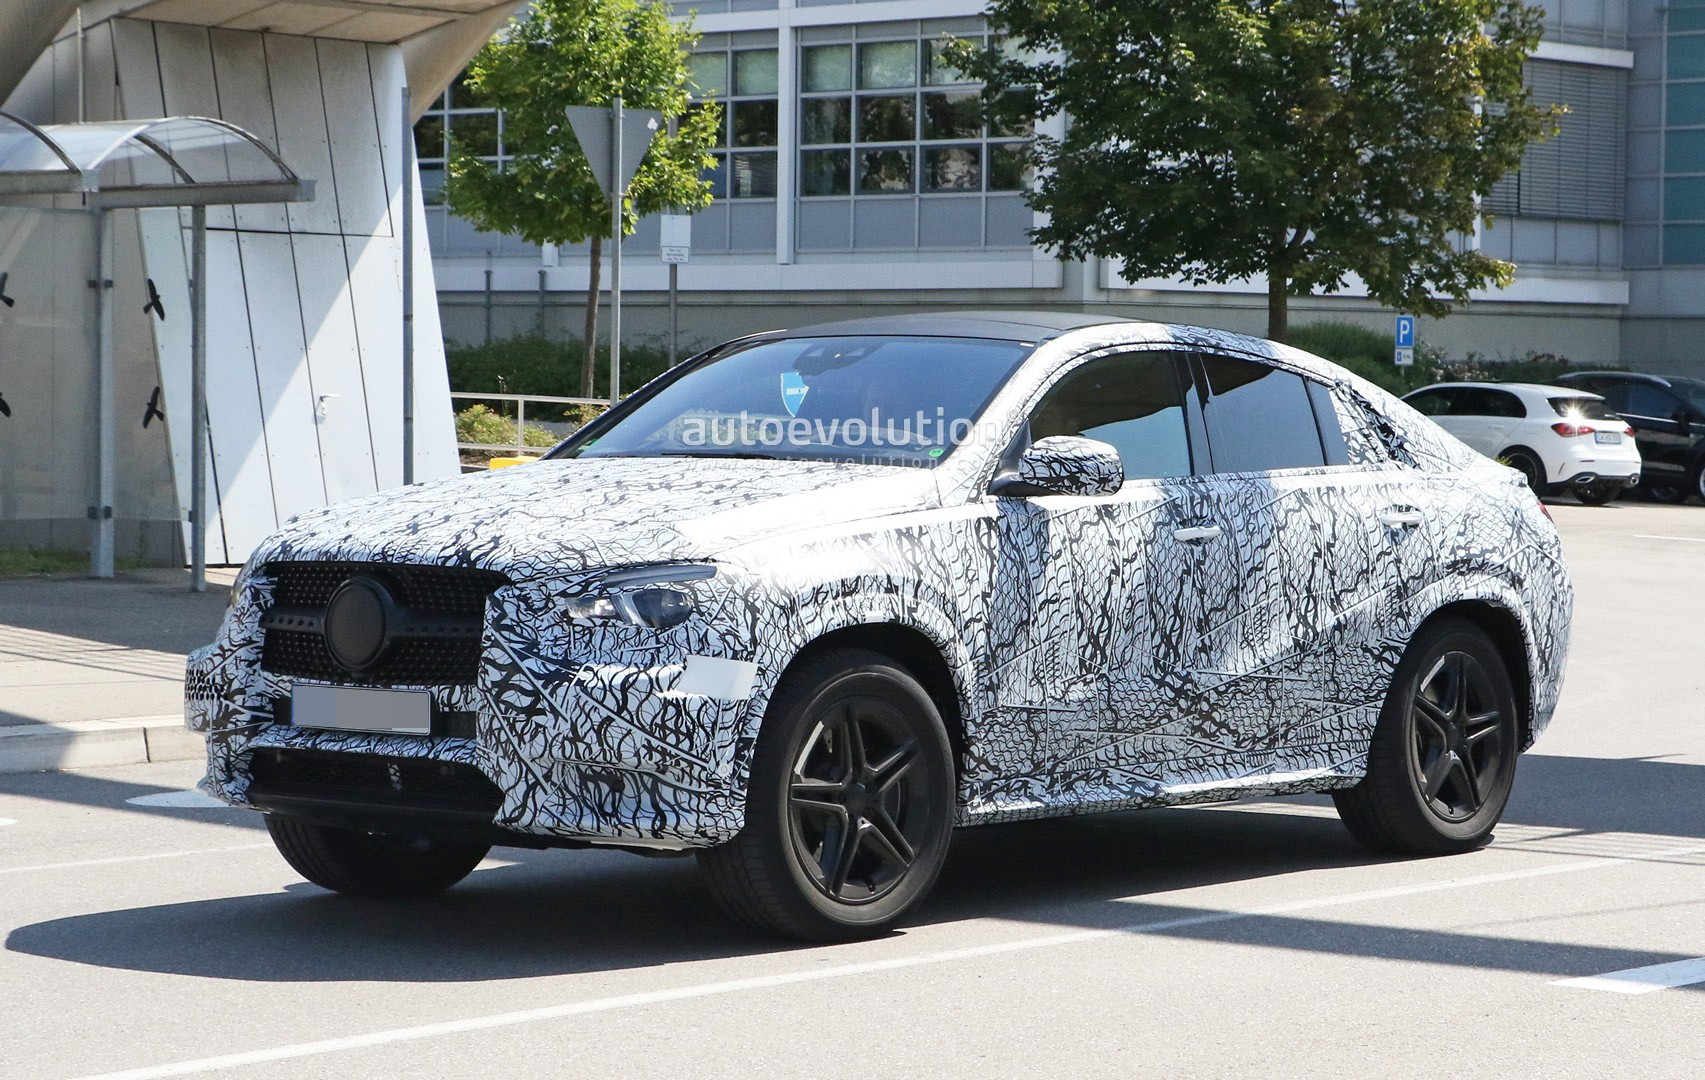 2020 mercedes gle coupe spied up close with amg line kit autoevolution. Black Bedroom Furniture Sets. Home Design Ideas